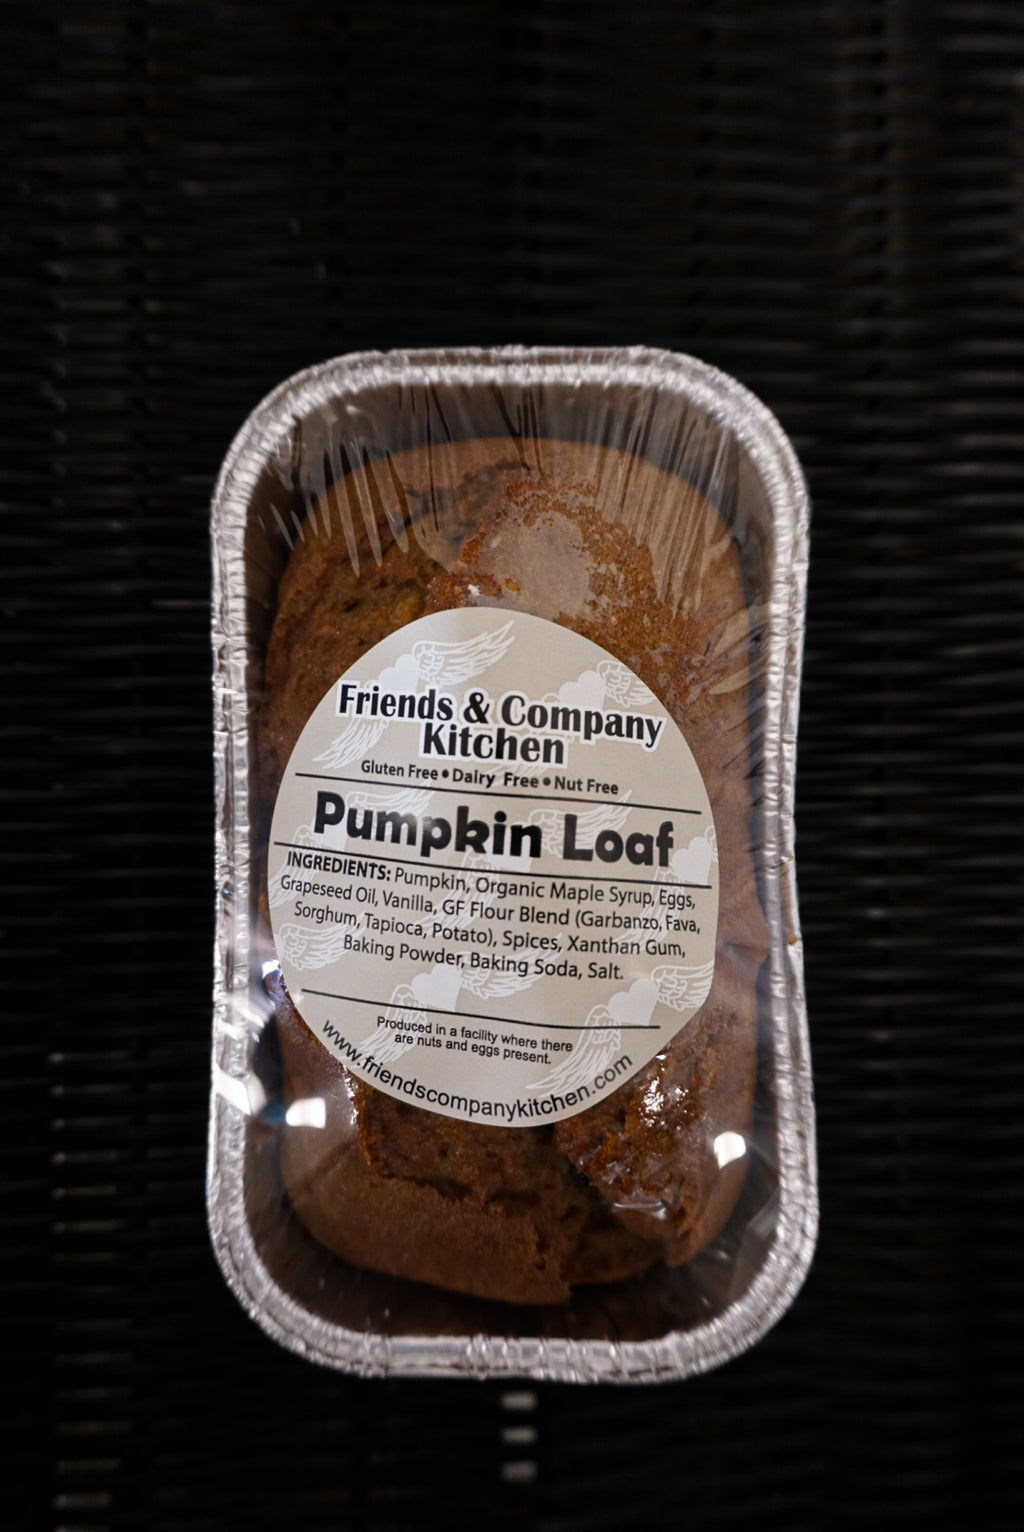 Friends & Company Kitchen Pumpkin Loaf - New Canaan